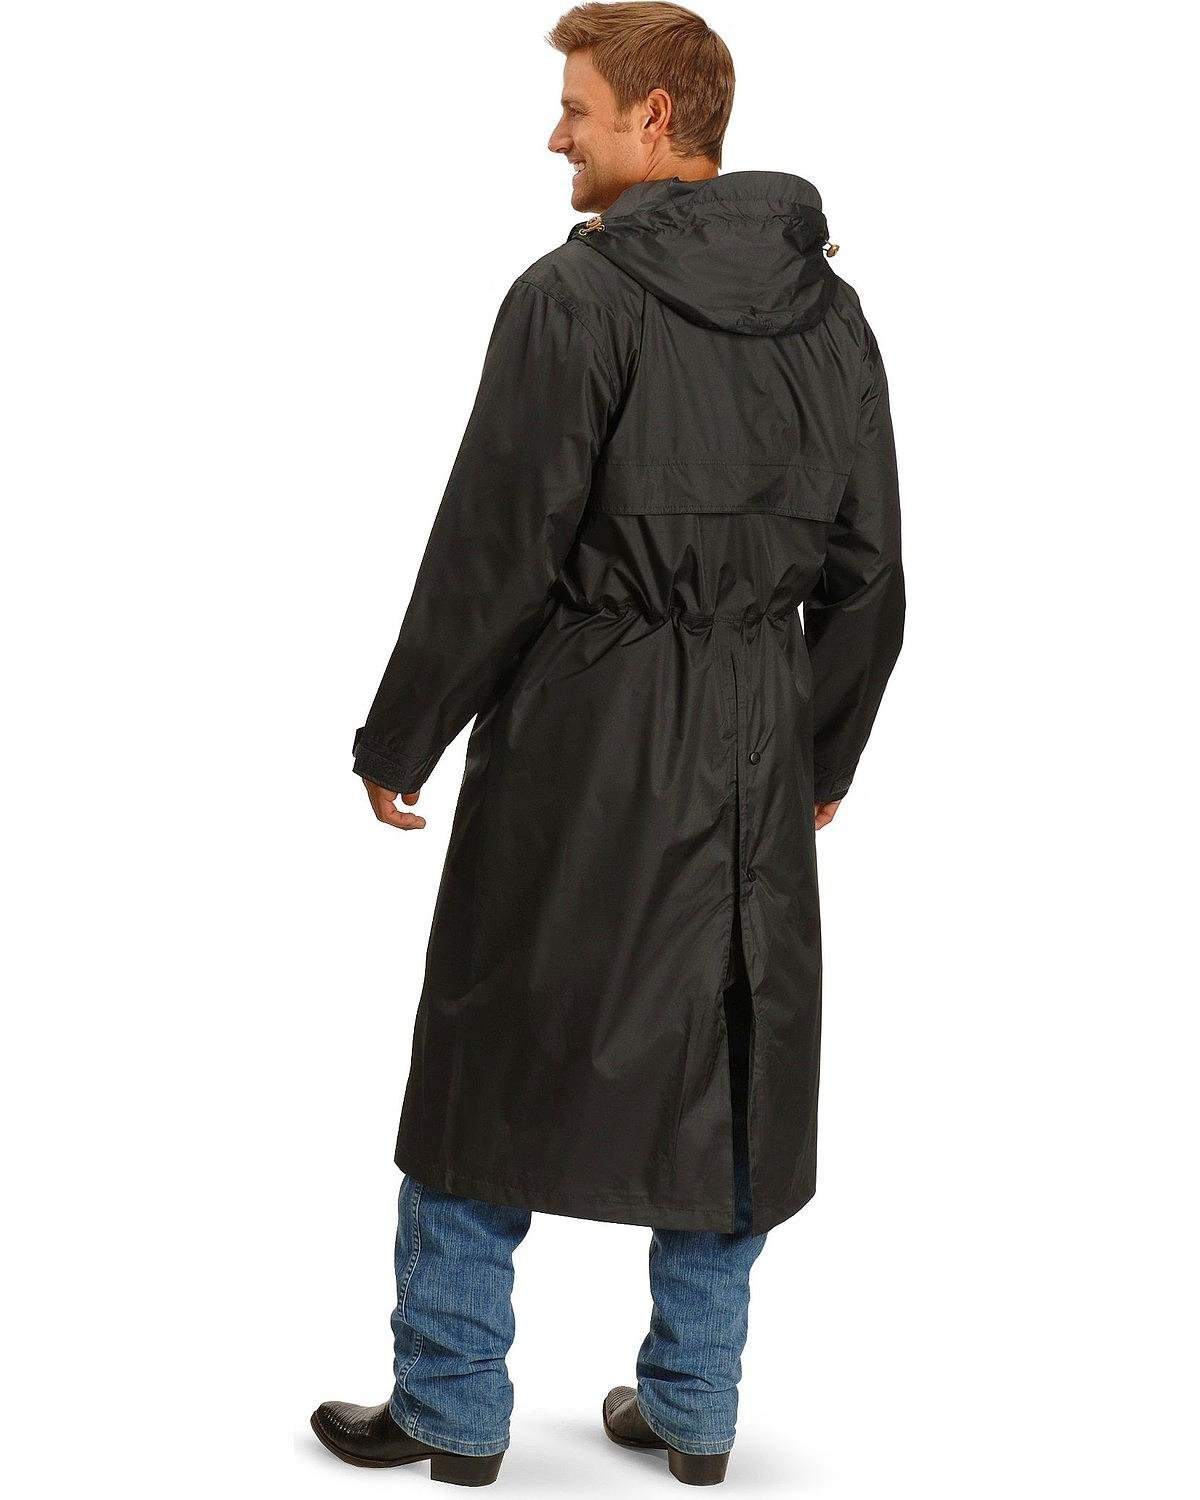 Outback Trading Pak-a-Roo Duster S Black by Outback Trading (Image #3)